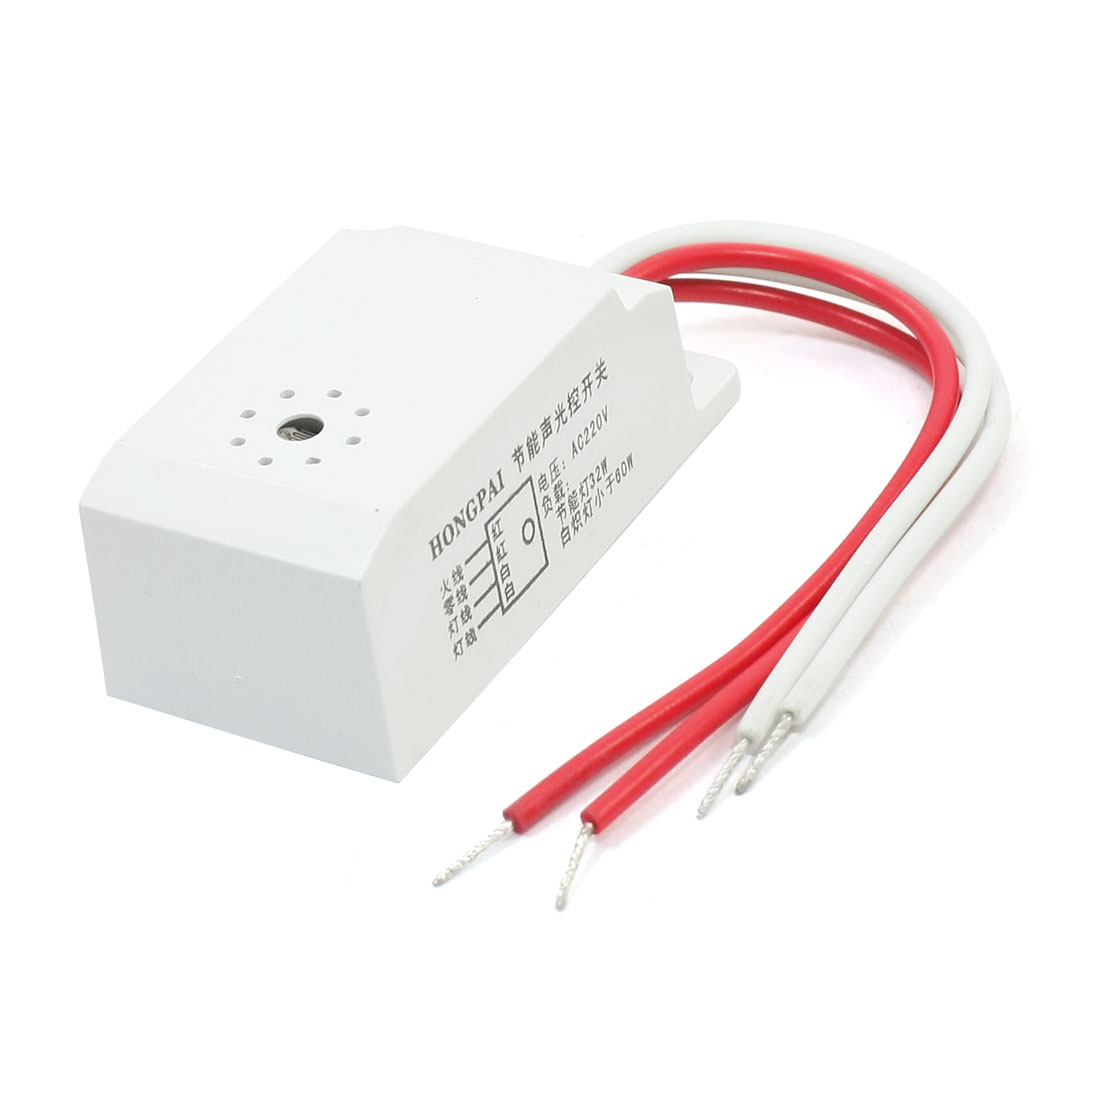 AC220V 60W 32W 4-Wire Connecting On Off Delay Control Rectangle Plastic Light Sound Sensor Module White